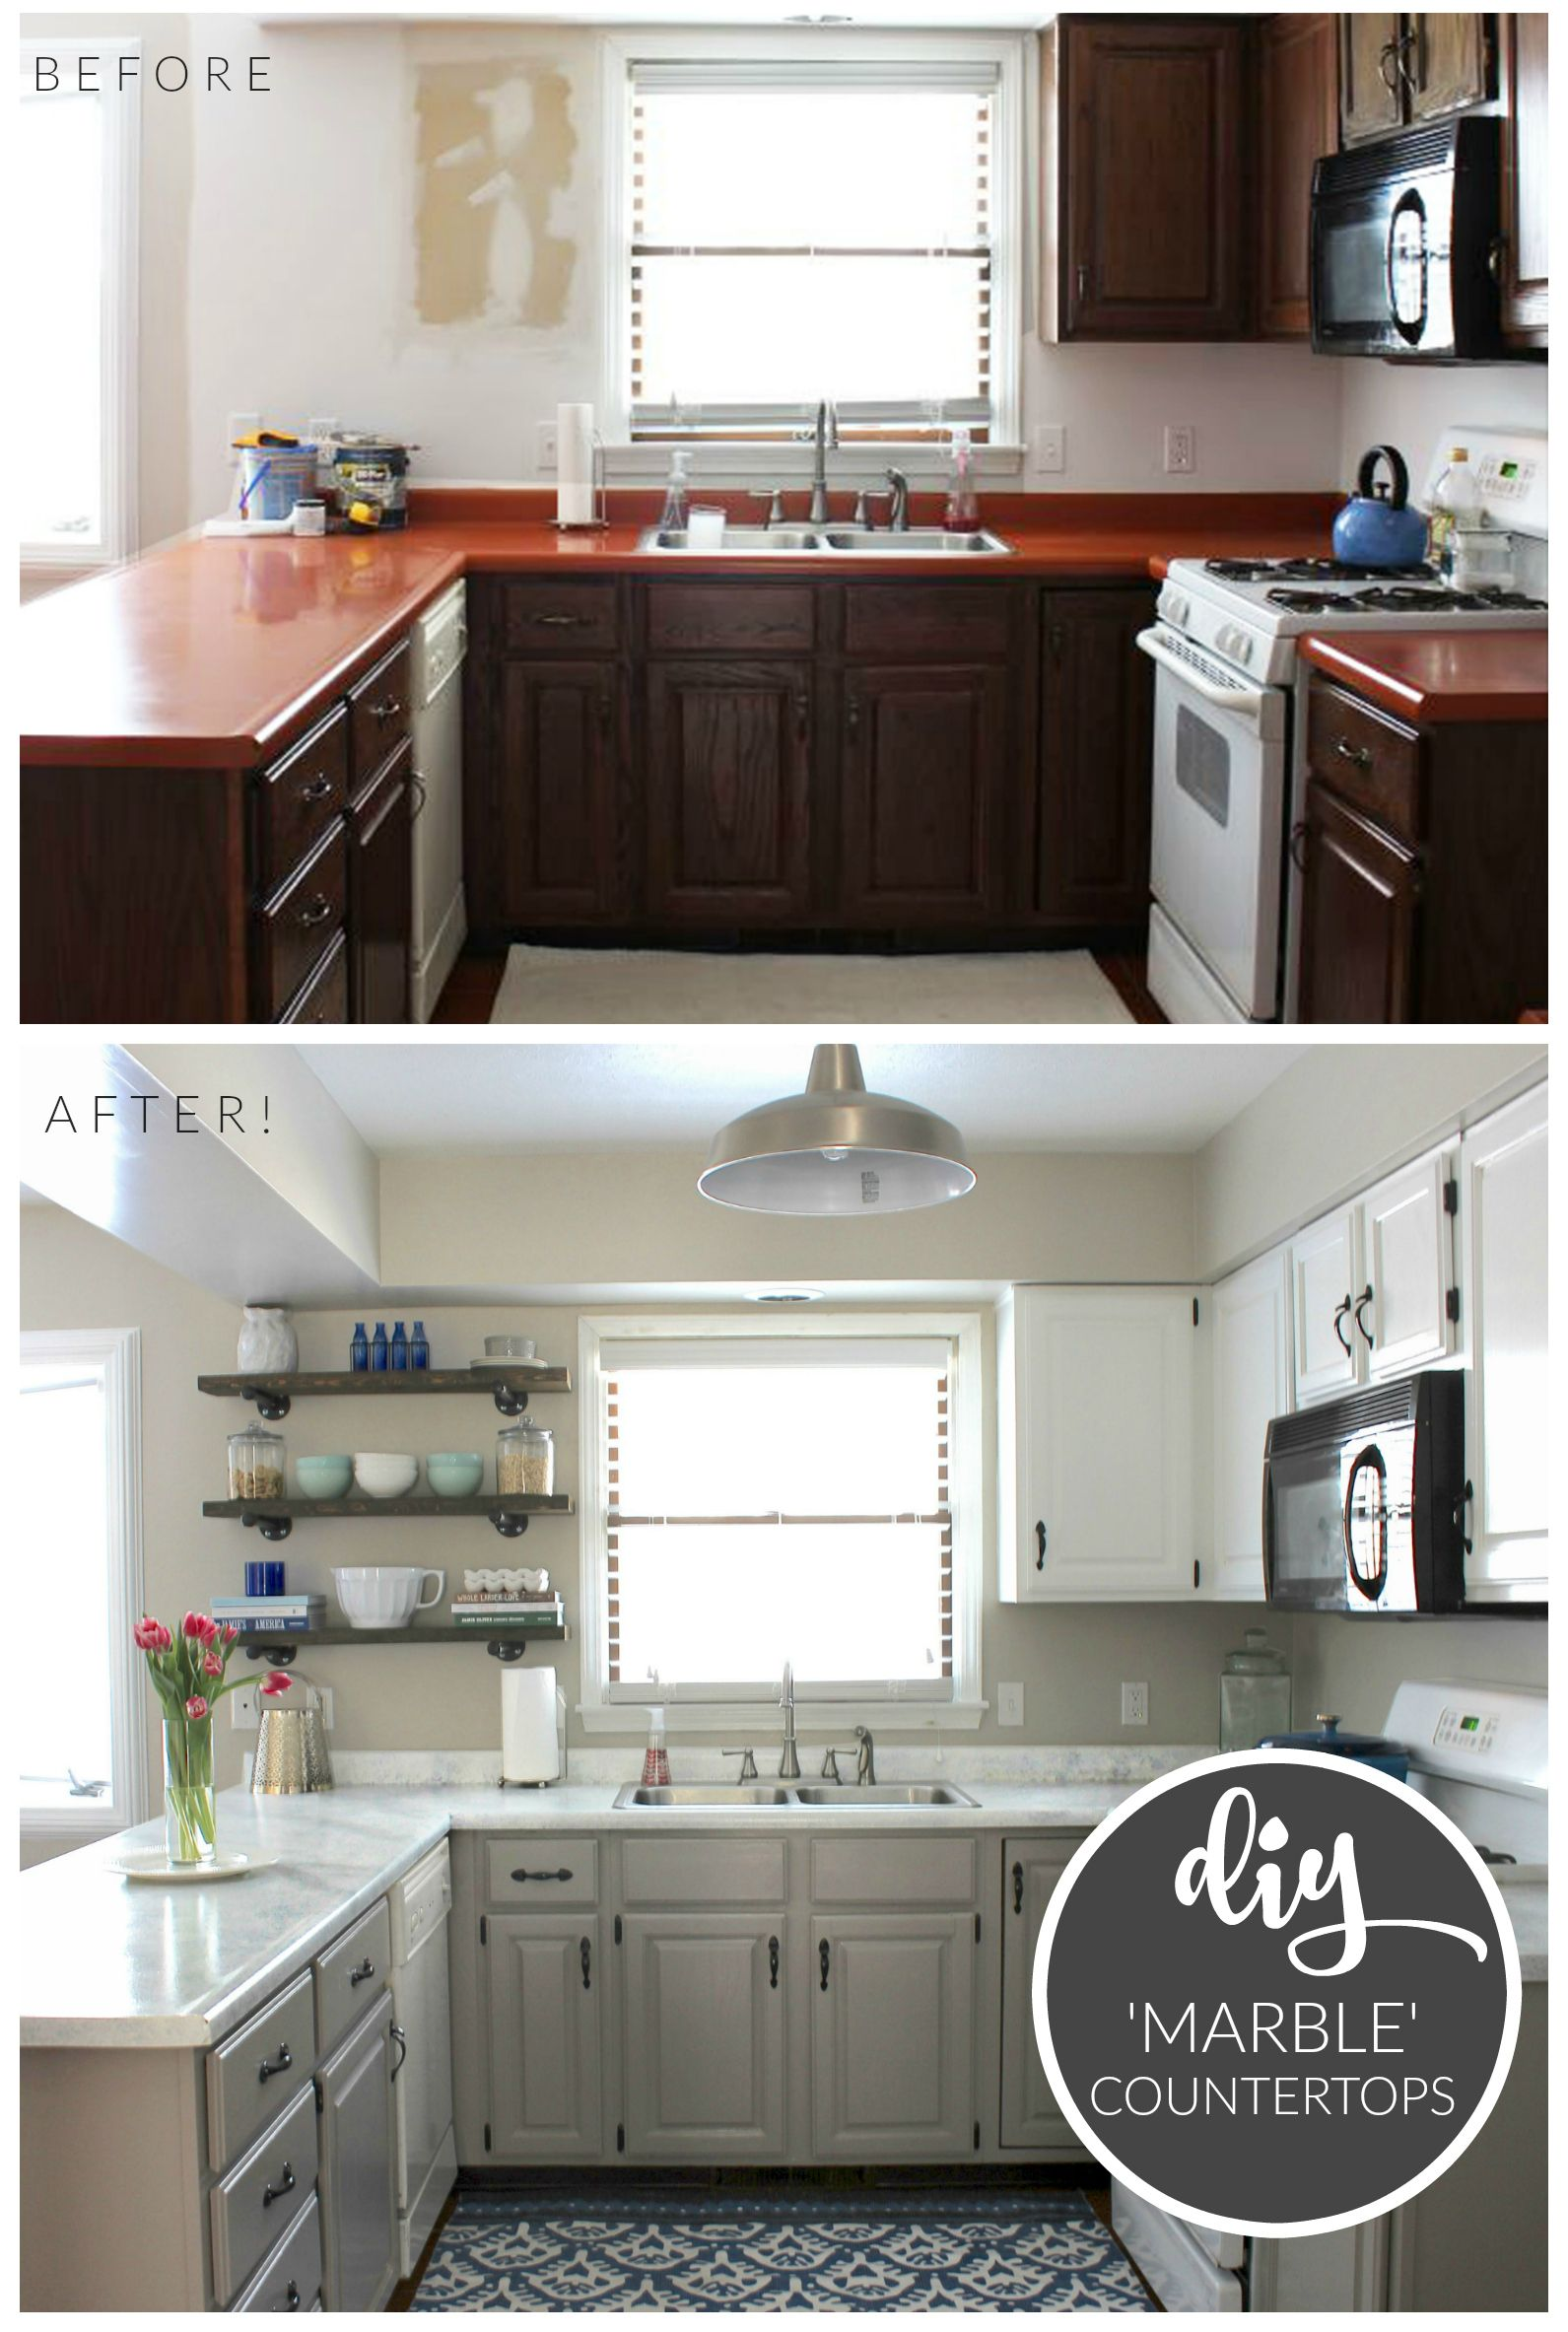 Kitchen Make Over Aide Attachments Budget Makeover Diy Faux Marble Countertops Painted With The White Diamond Giani Countertop Paint Kit Creates Look Of Natural Stone For